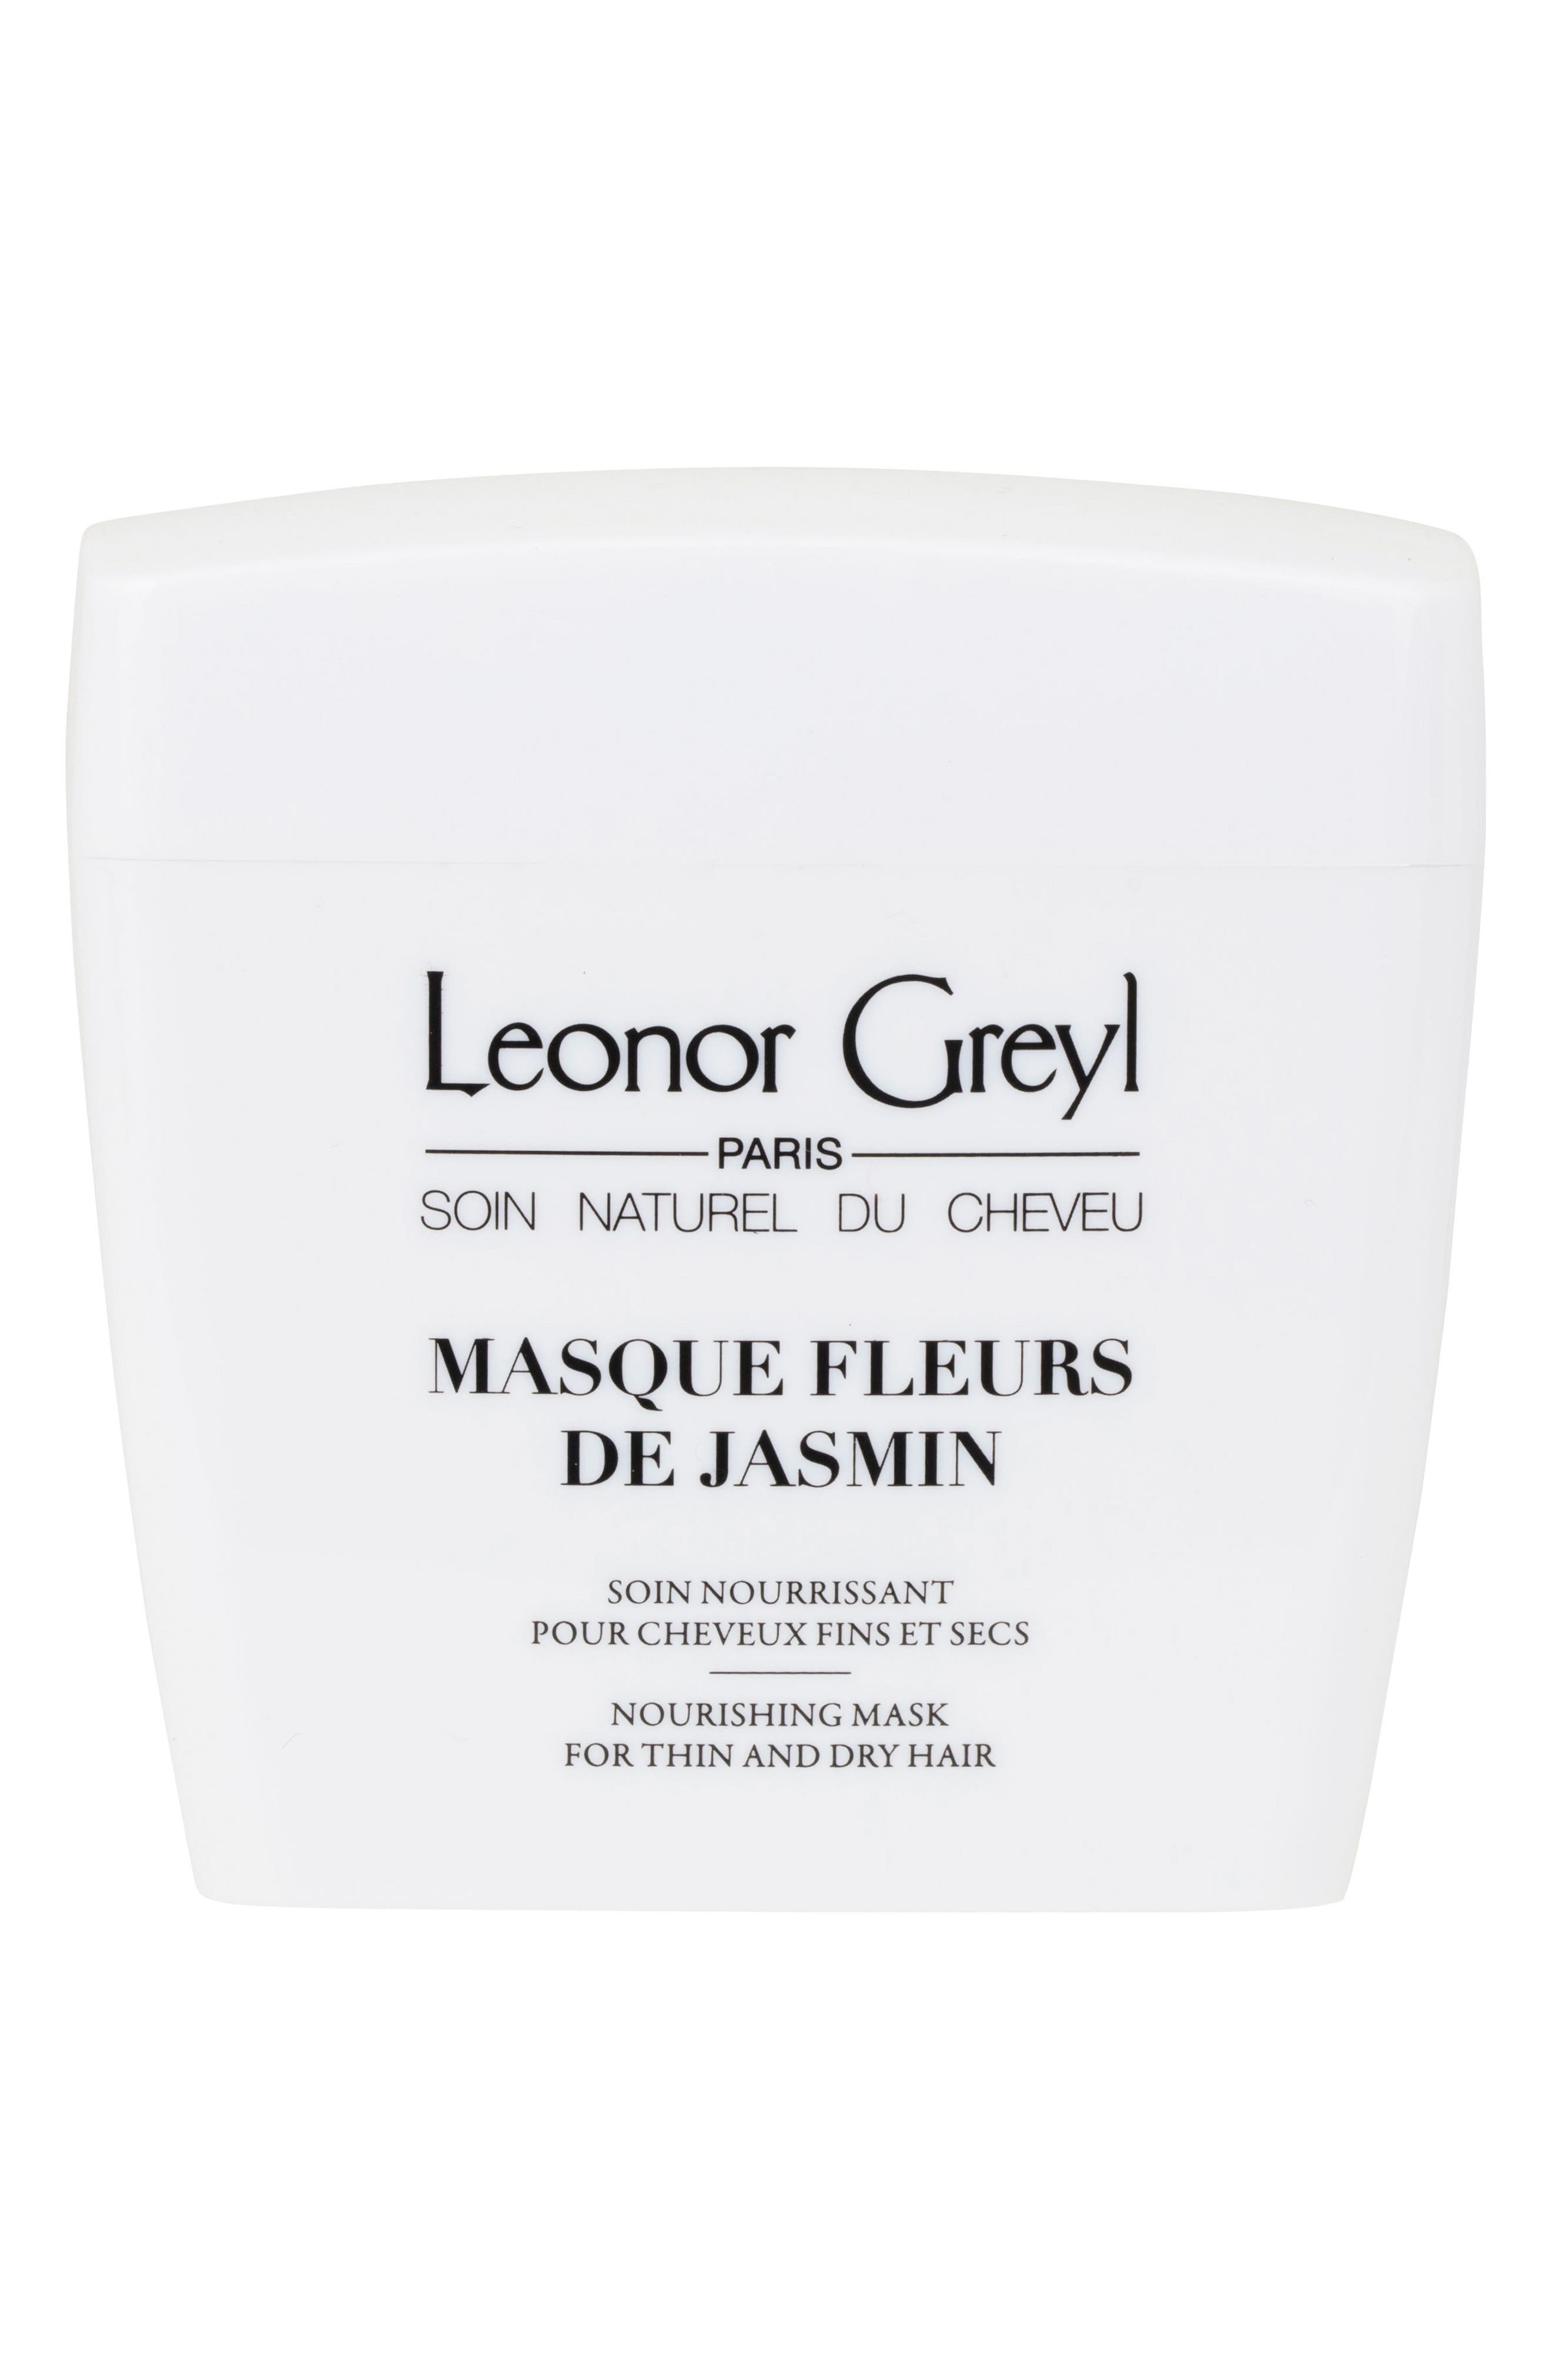 Masque Fleurs De Jasmin (Nourishing Mask For Thin And Dry Hair), 7.0 Oz./ 200 Ml